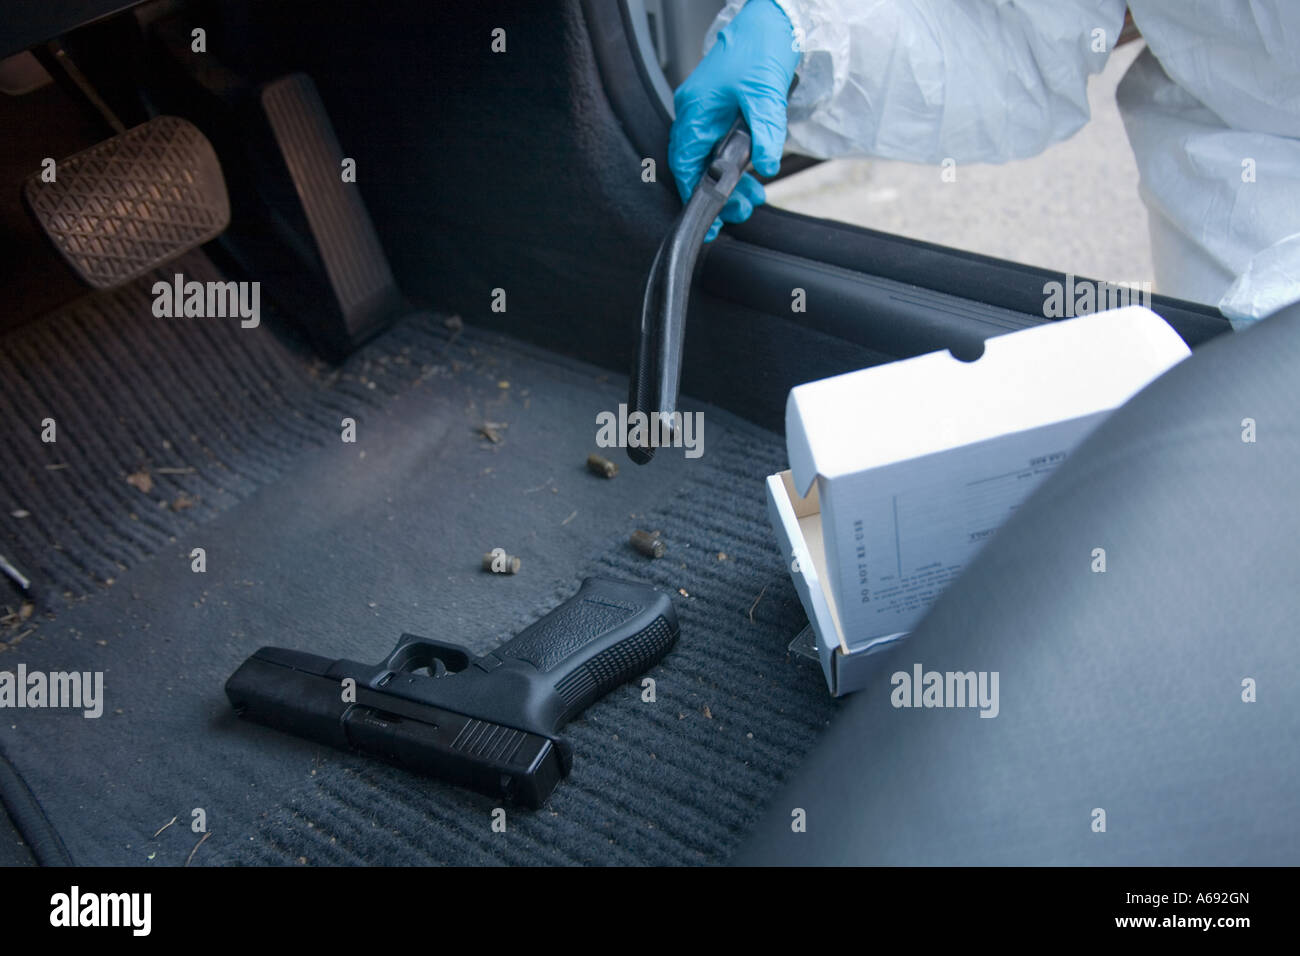 firearms at a crime scene essay